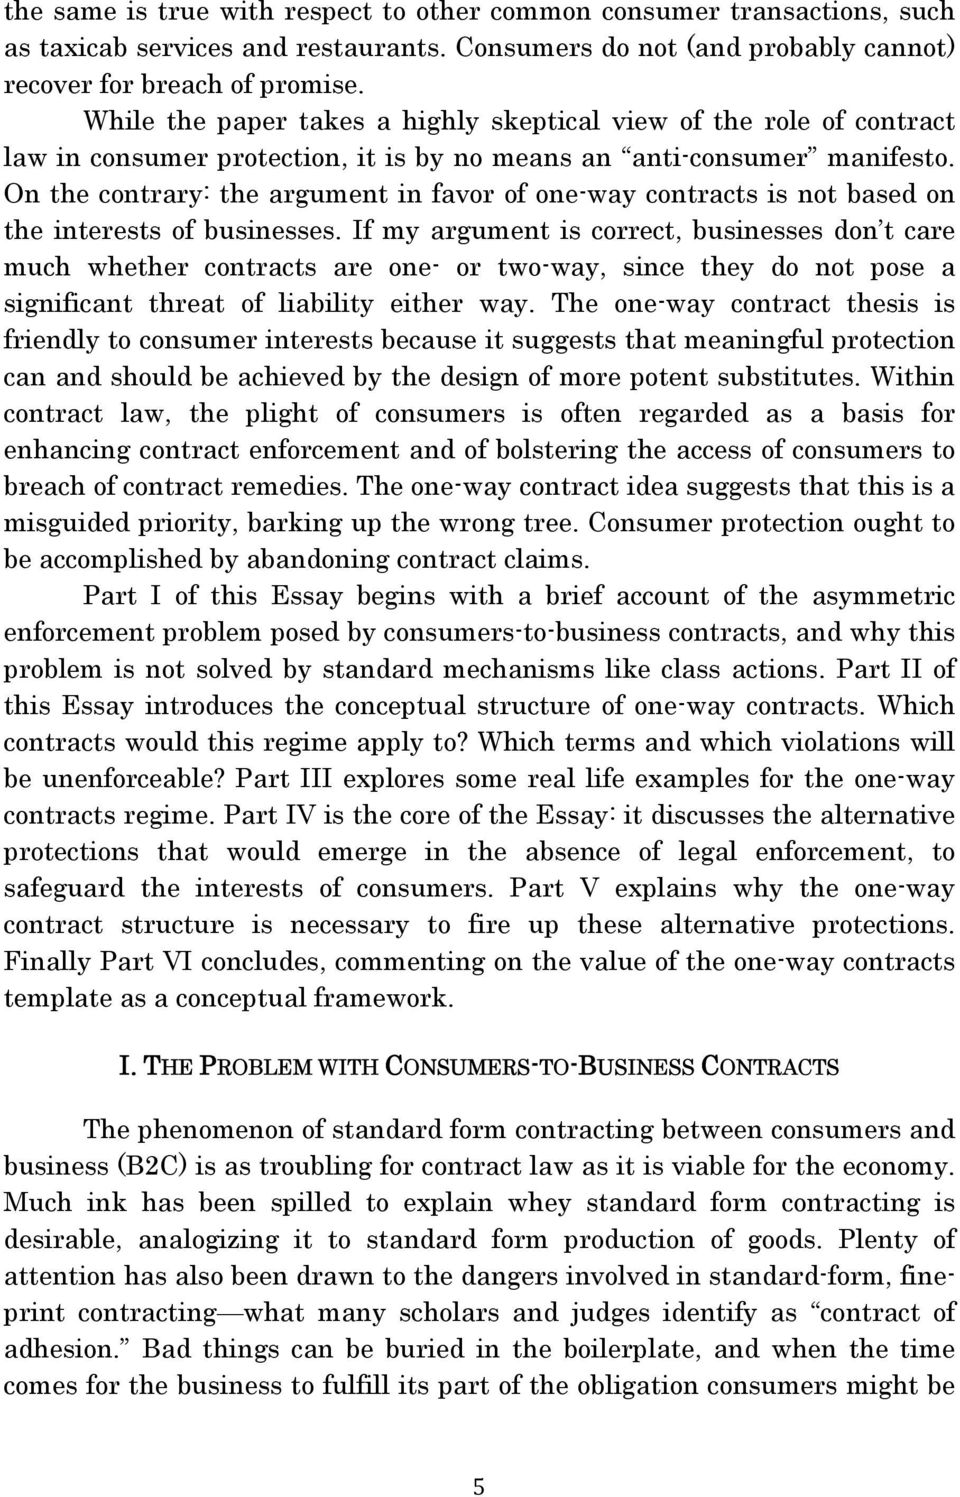 On the contrary: the argument in favor of one-way contracts is not based on the interests of businesses.